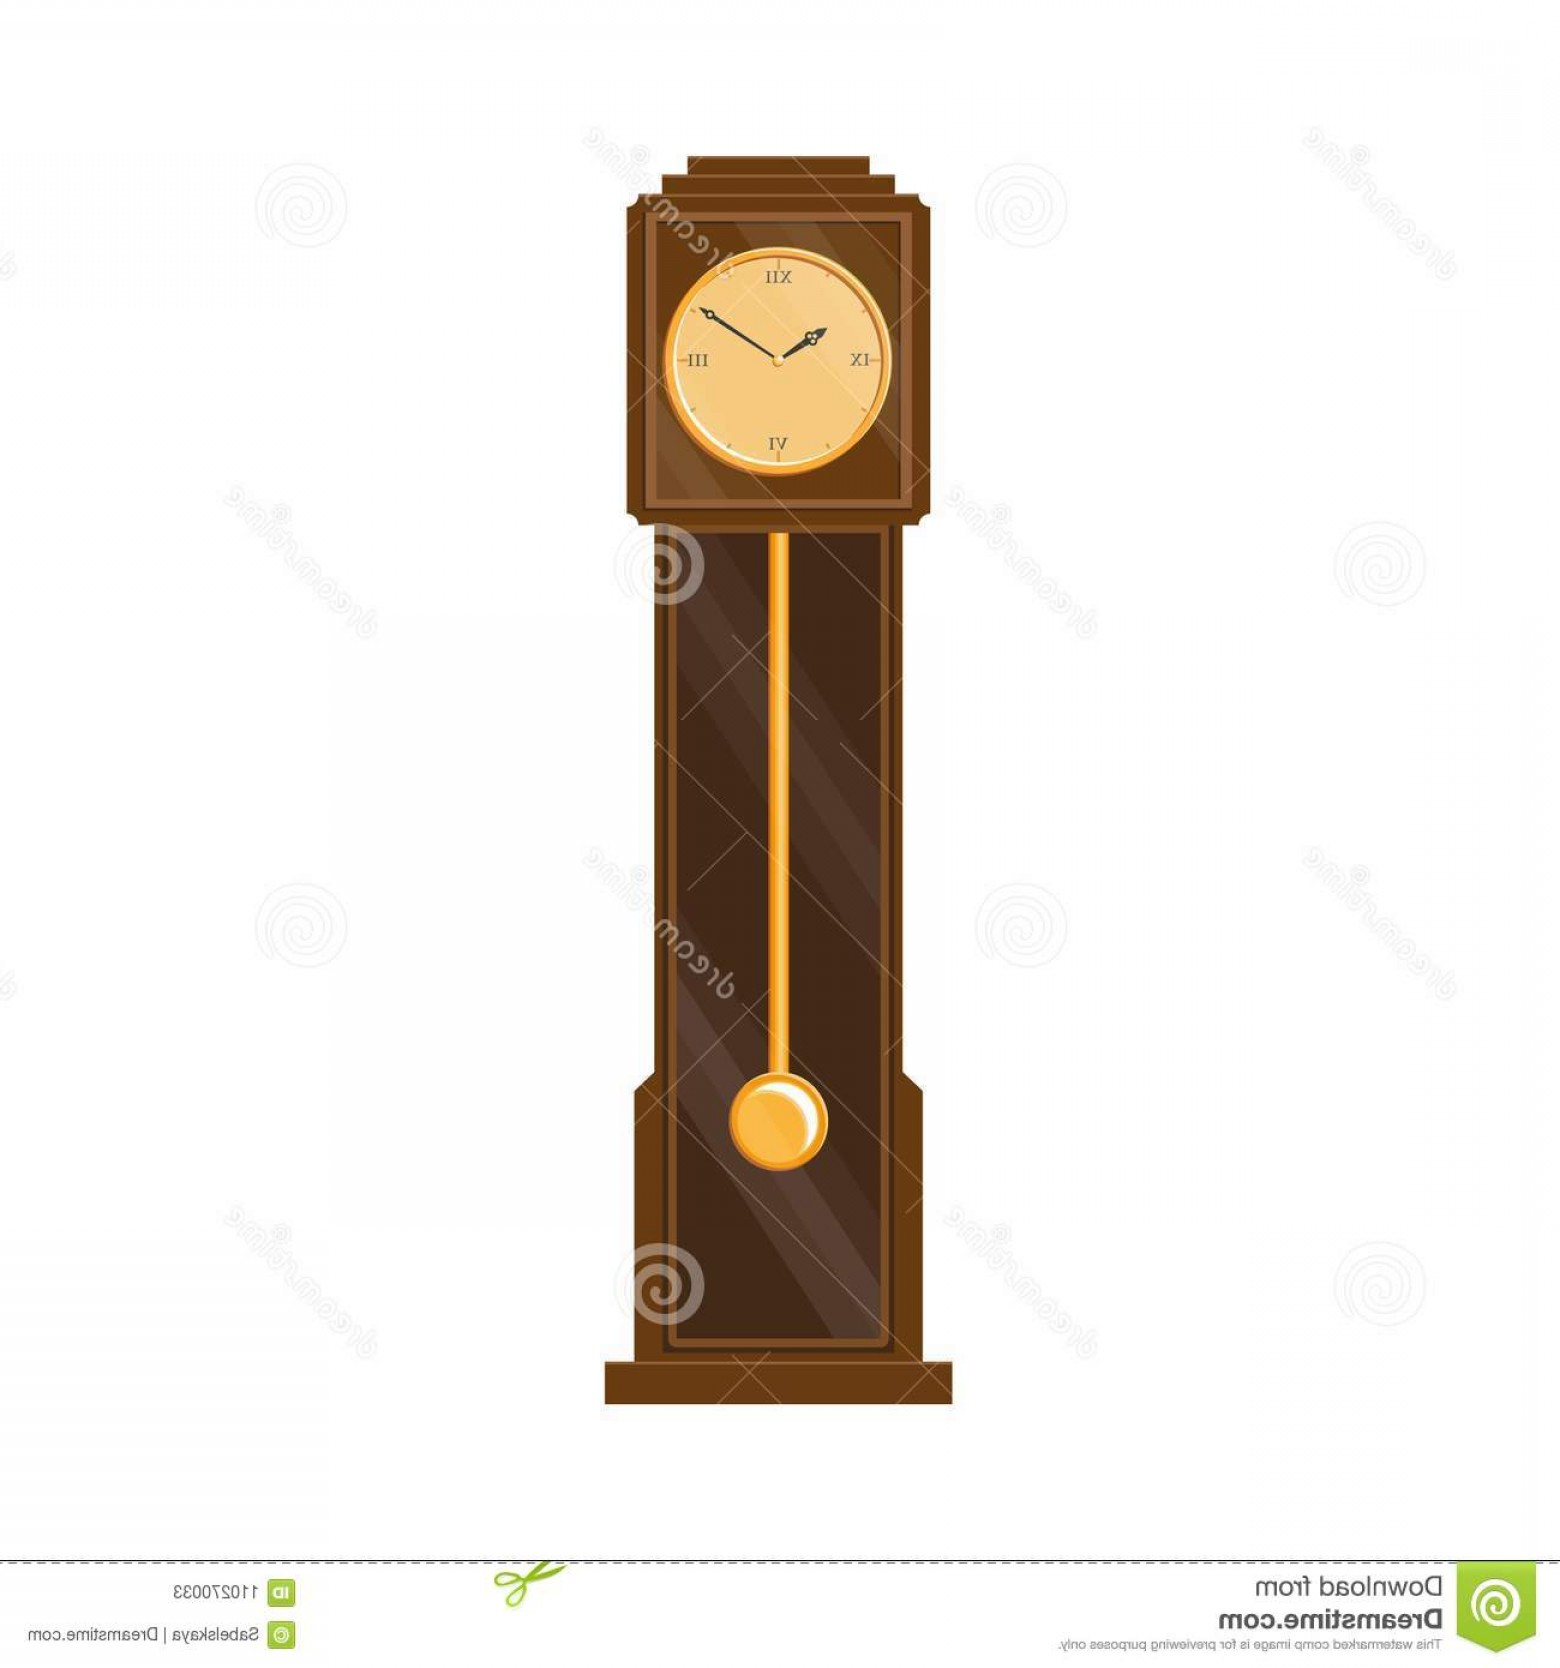 Old Floor Clock Vector: Vector Flat Vintage Grandfather Clock Isolated Vector Flat Vintage Antique Wooden Grandfather Pendulum Clock Icon Your Design Image